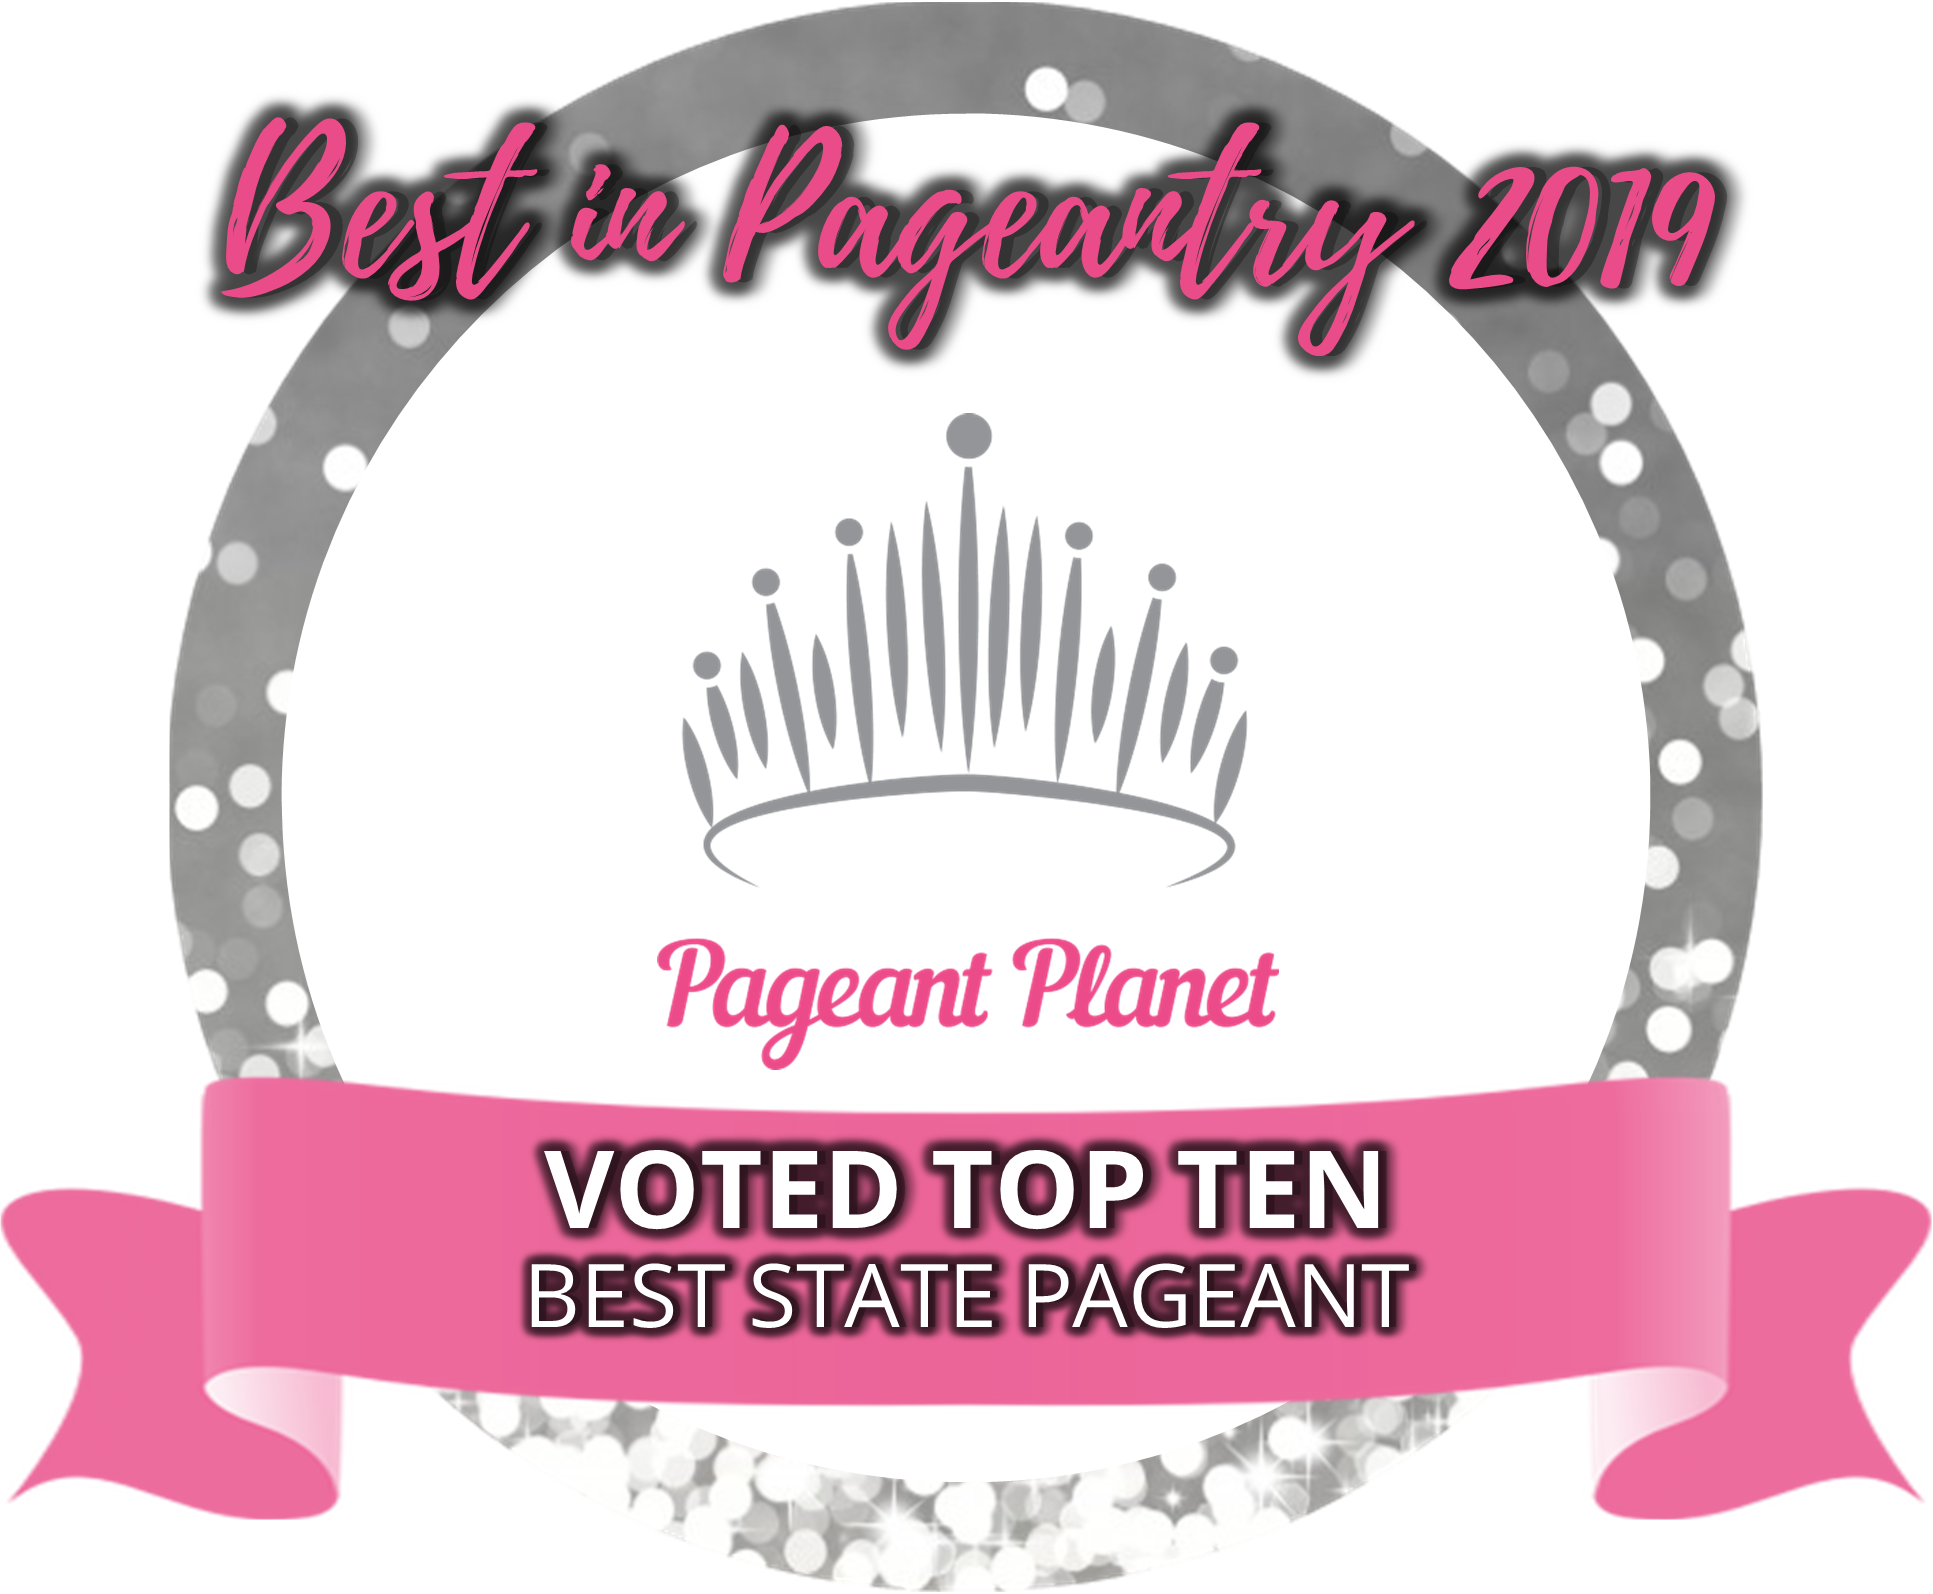 Top 10 State Pageants of 2019